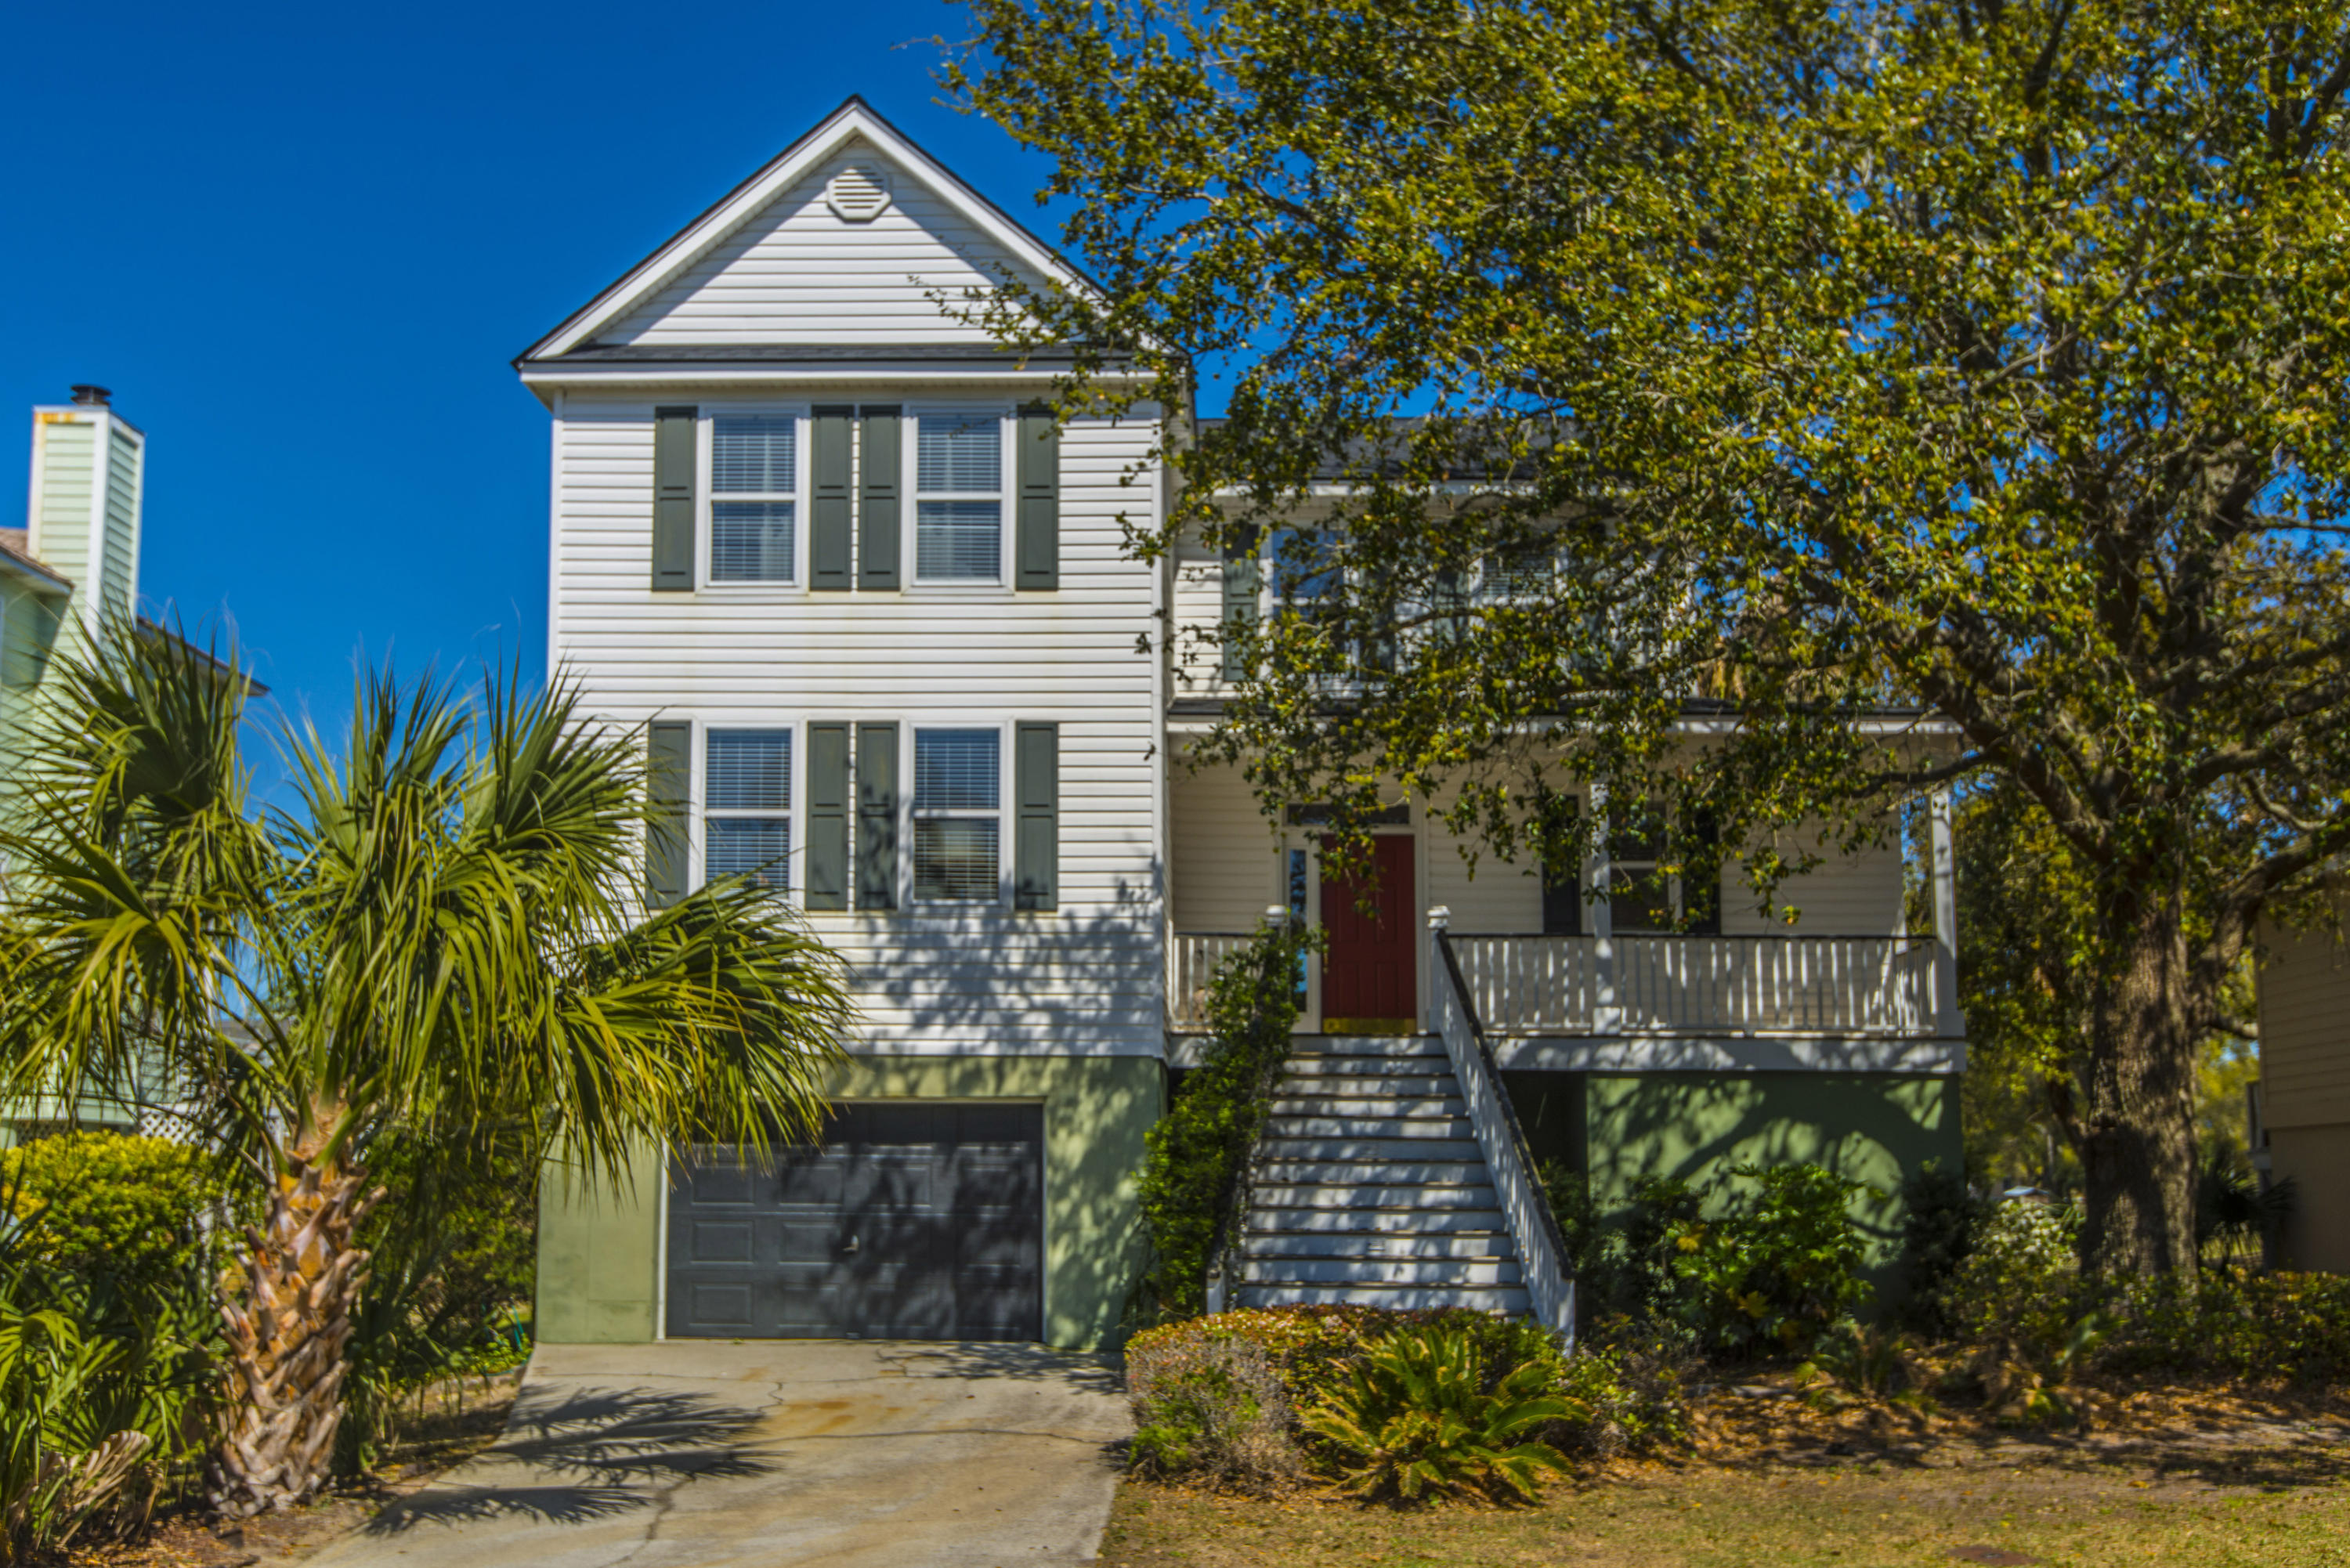 10 Frank Sottile Lane Isle of Palms $788,500.00